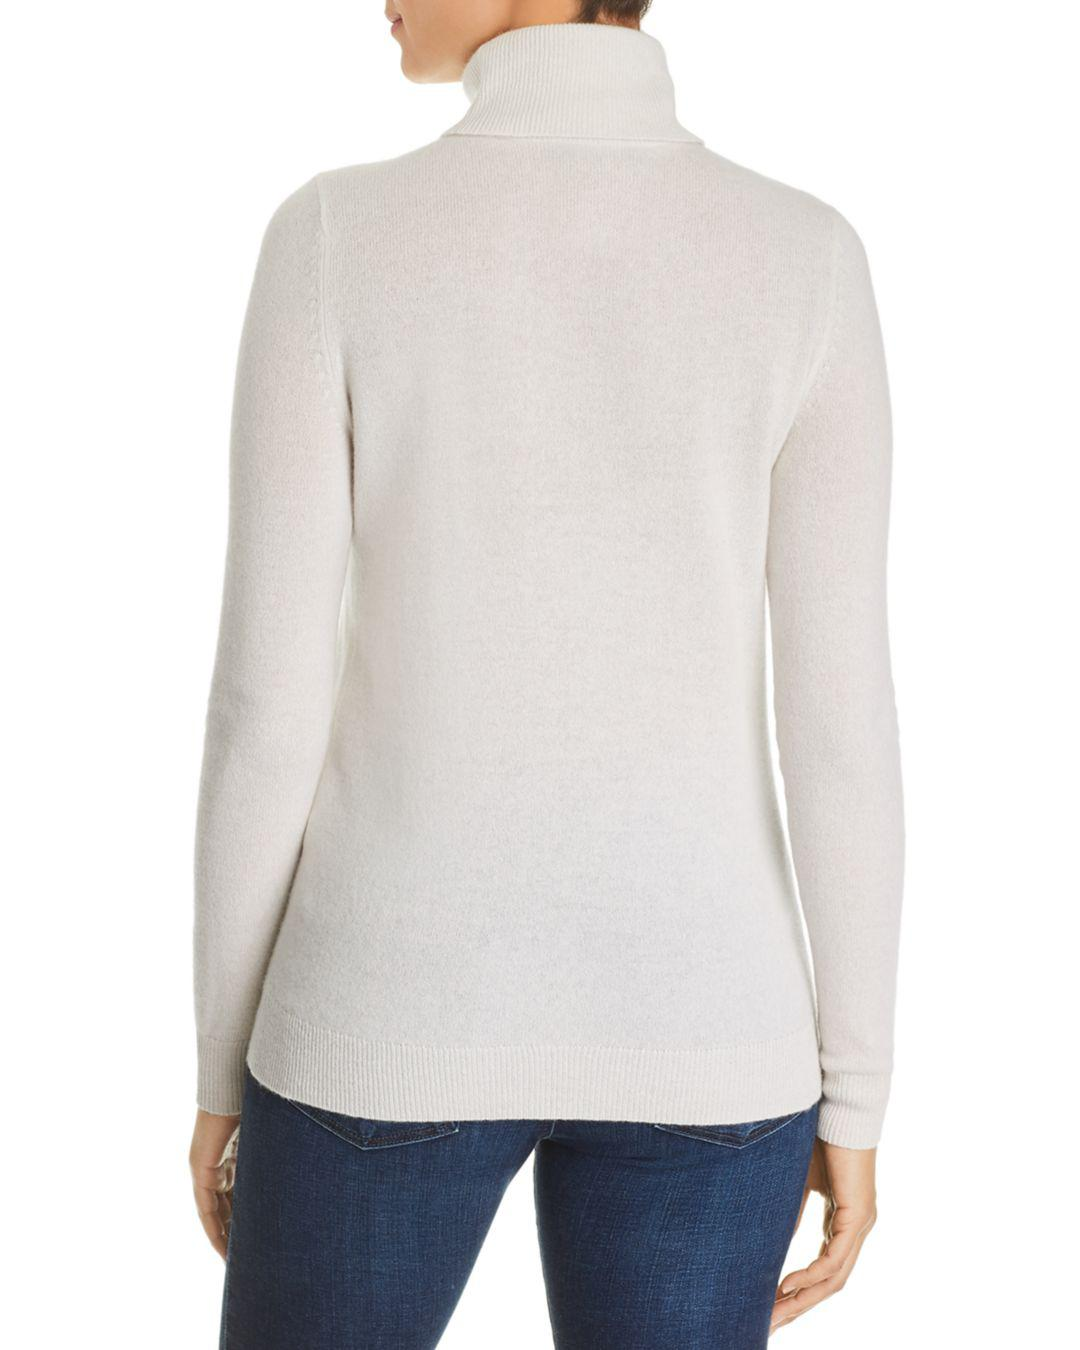 Lyst - C By Bloomingdale s Cashmere Turtleneck Sweater in White edc8f506c